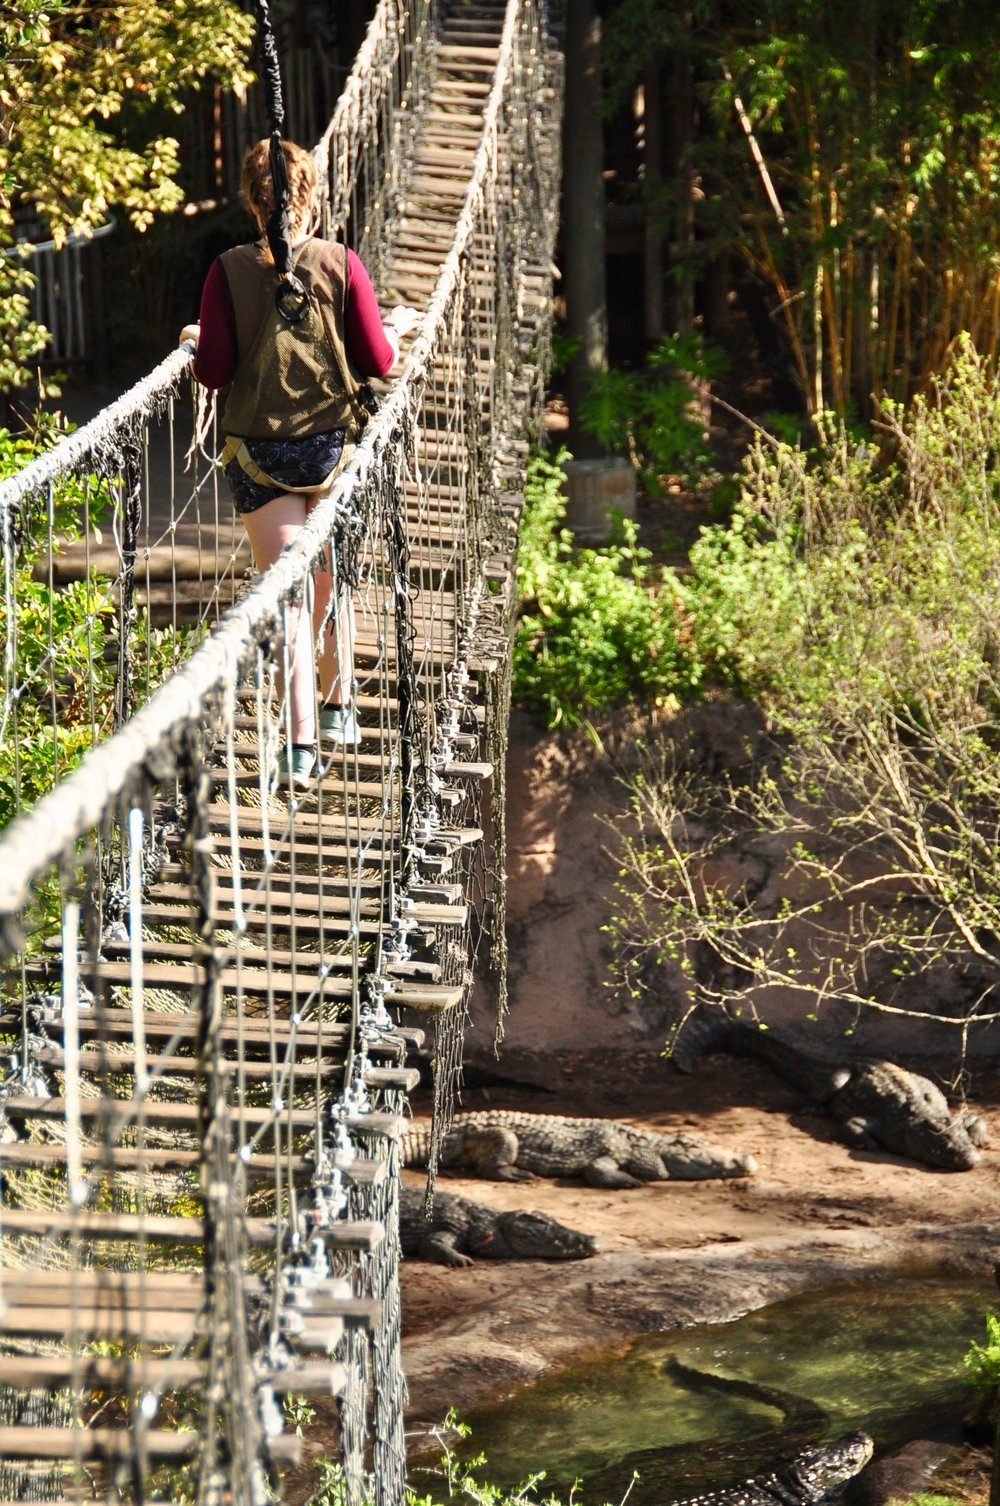 Behind-The-Scenes Tour at Disney World - Wild Africa Trek - Rope Bridge over Crocodiles - How to Make the Most of Disney Theme Parks as an Adult